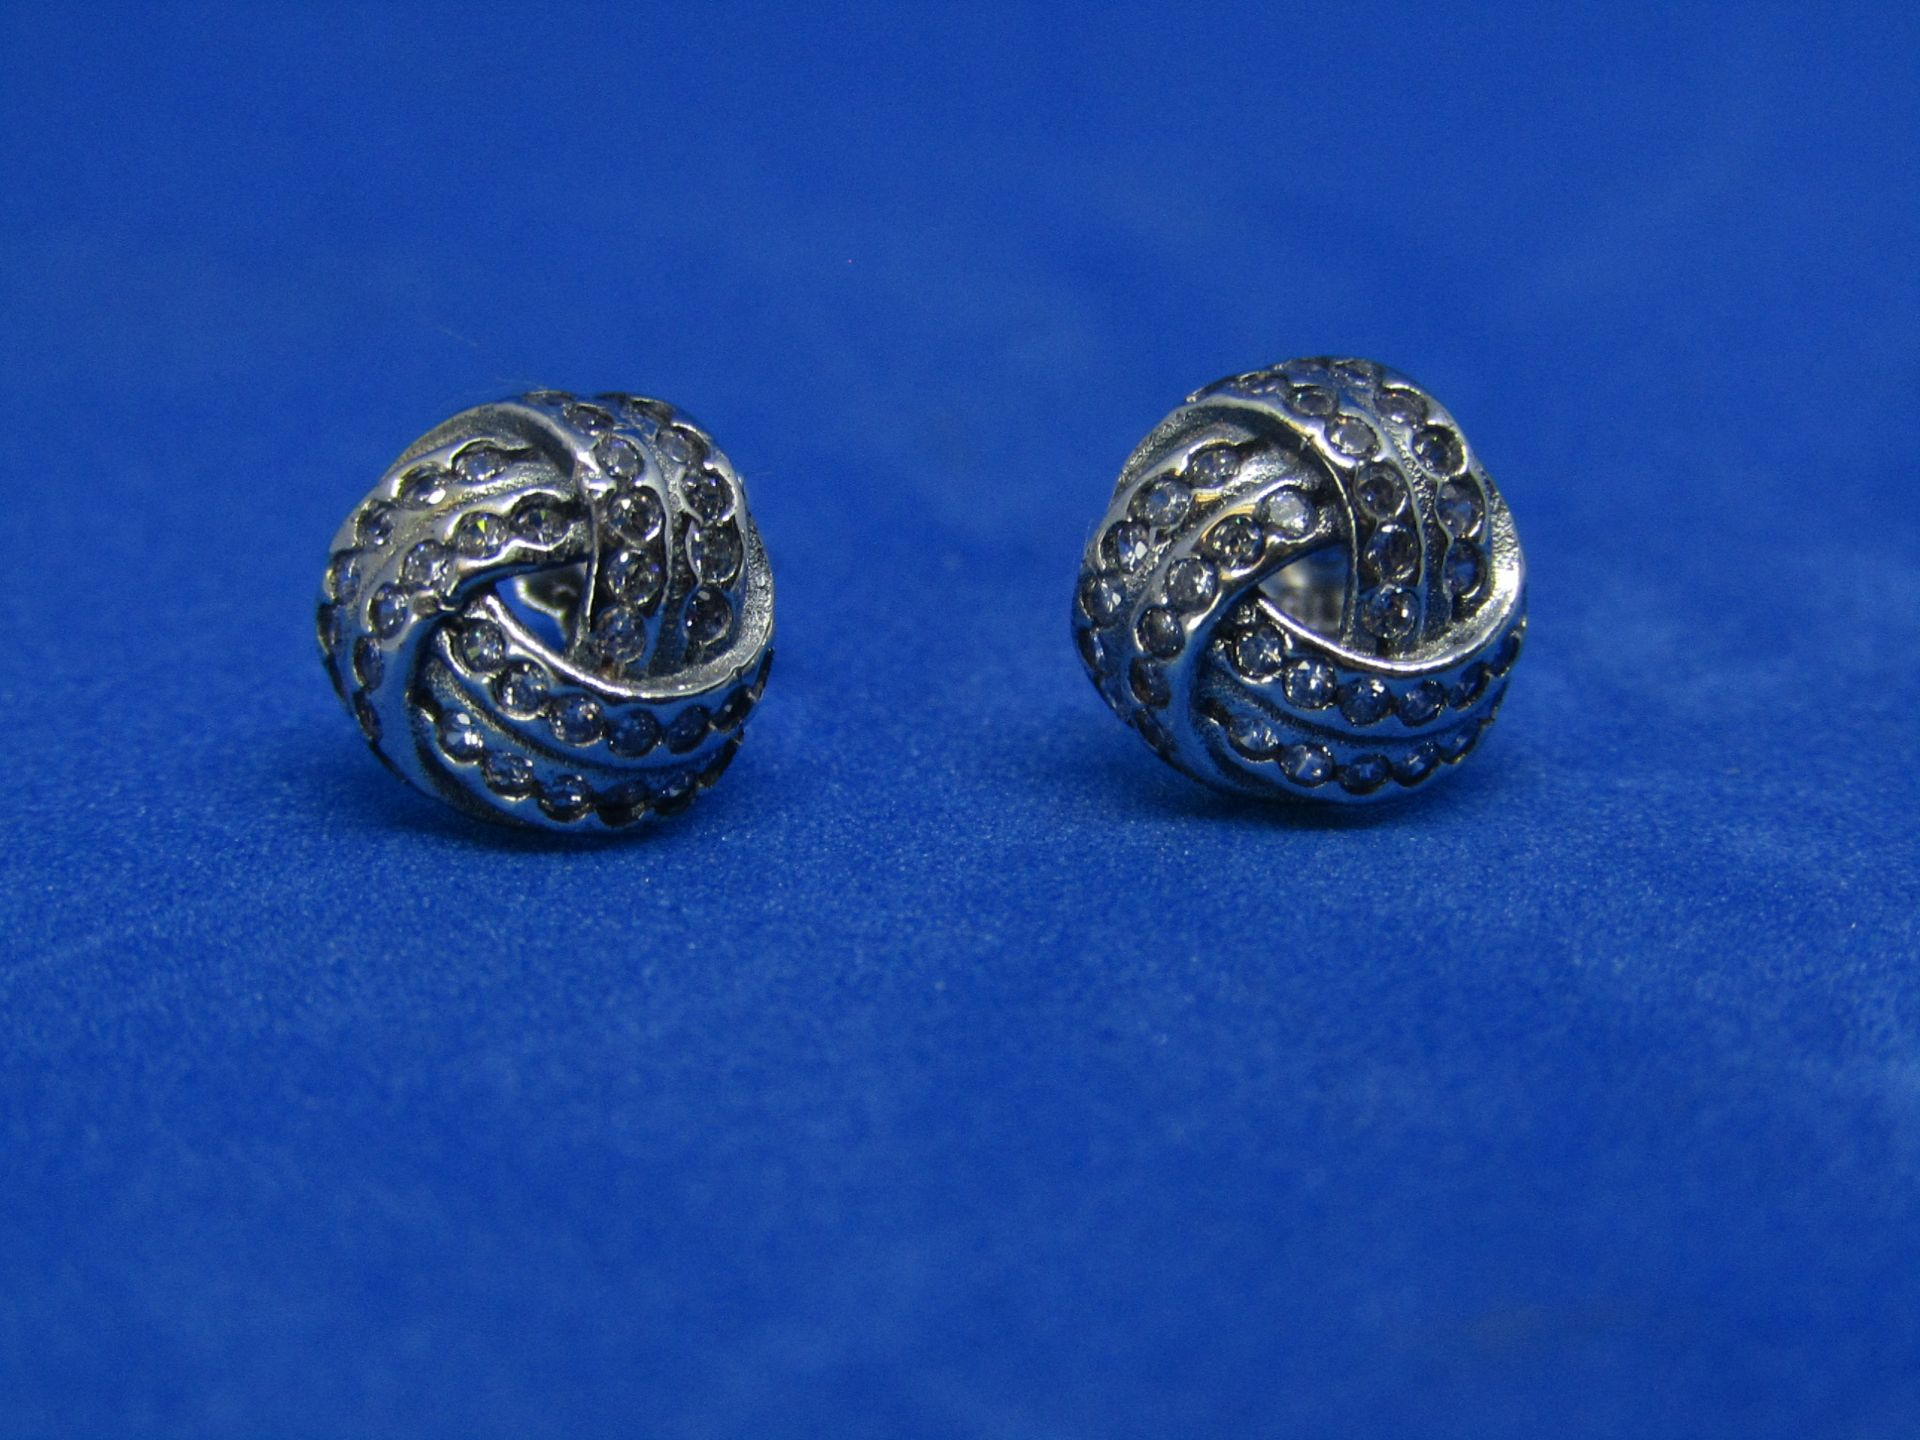 Pandora Earrings, new with presentation bag.